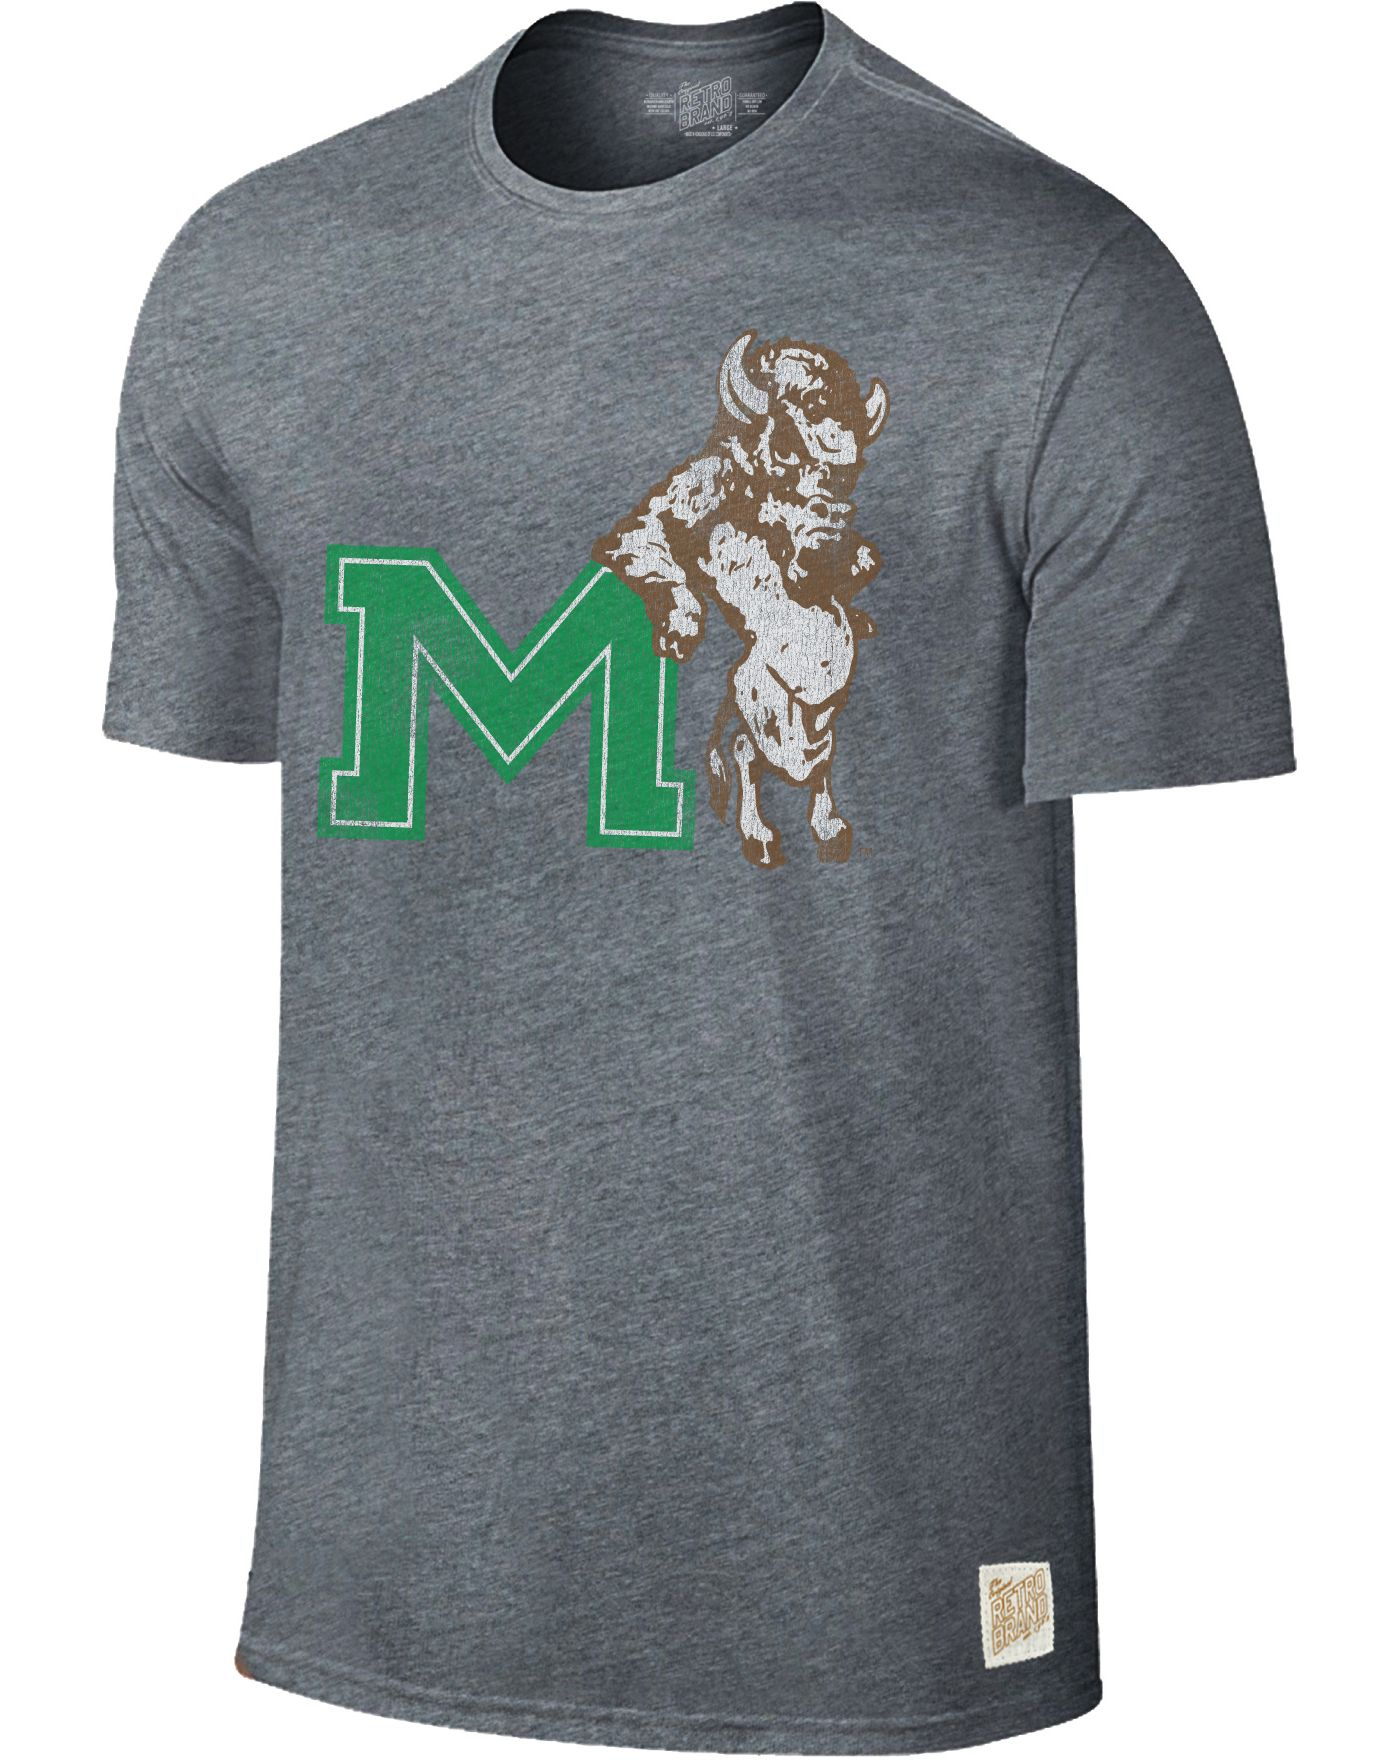 Original Retro Brand Men's Marshall Thundering Herd Grey Retro Tri-Blend T-Shirt